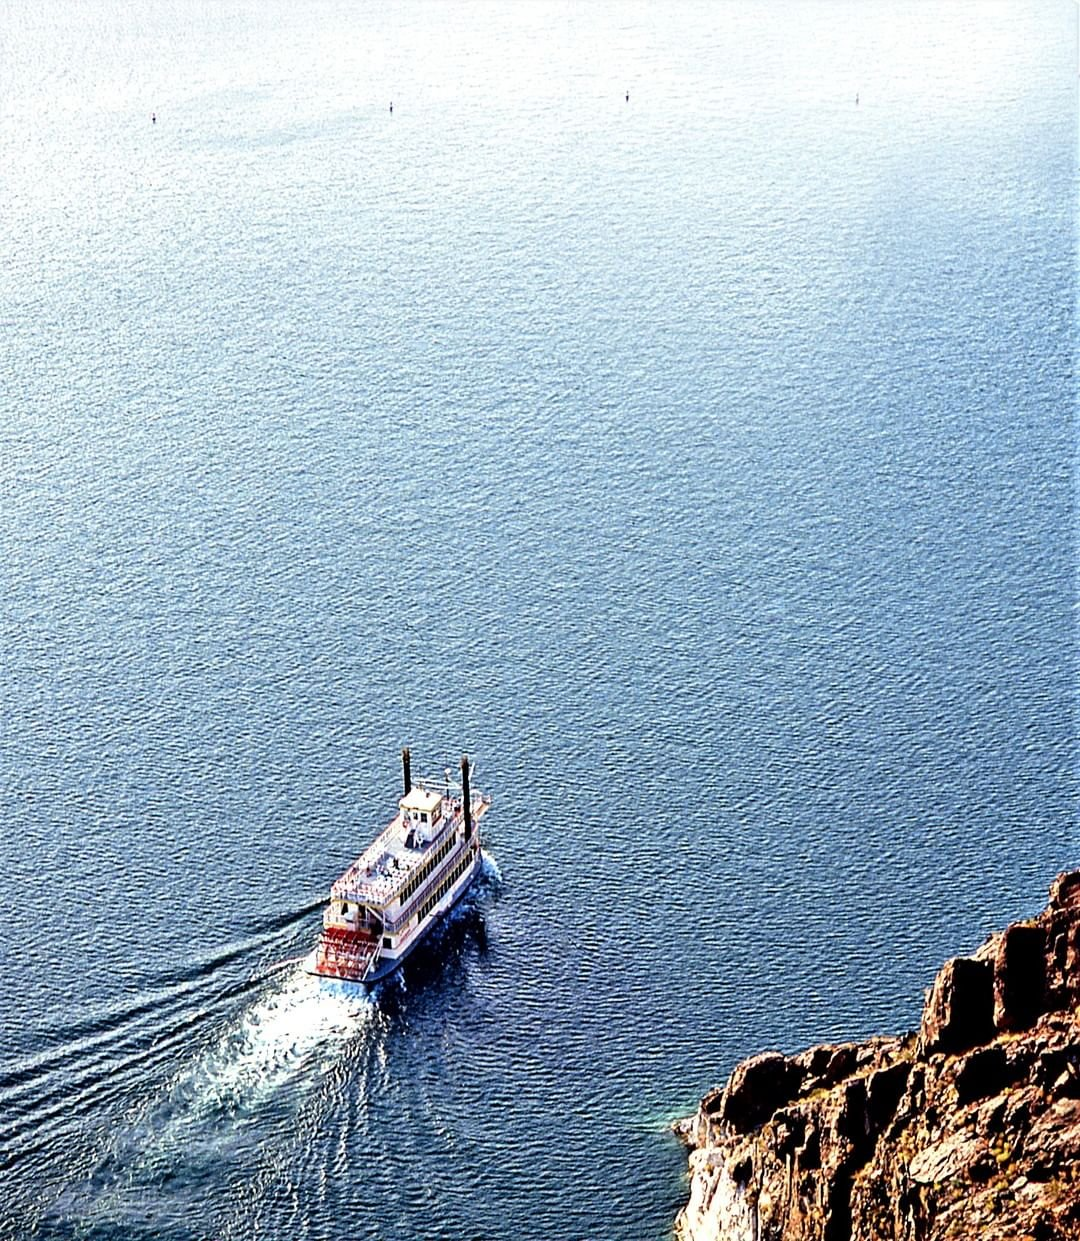 Throw off the bowlines.  Sail away from the safe harbor.  Catch the trade winds in your sails.  #lakemead #desertprincess #lakemeadcruises #findyourpark #boating #sightseeingcruise #travelnevada #paddlewheeler #onthewater #boat #quotes #aerialview #southernnevada